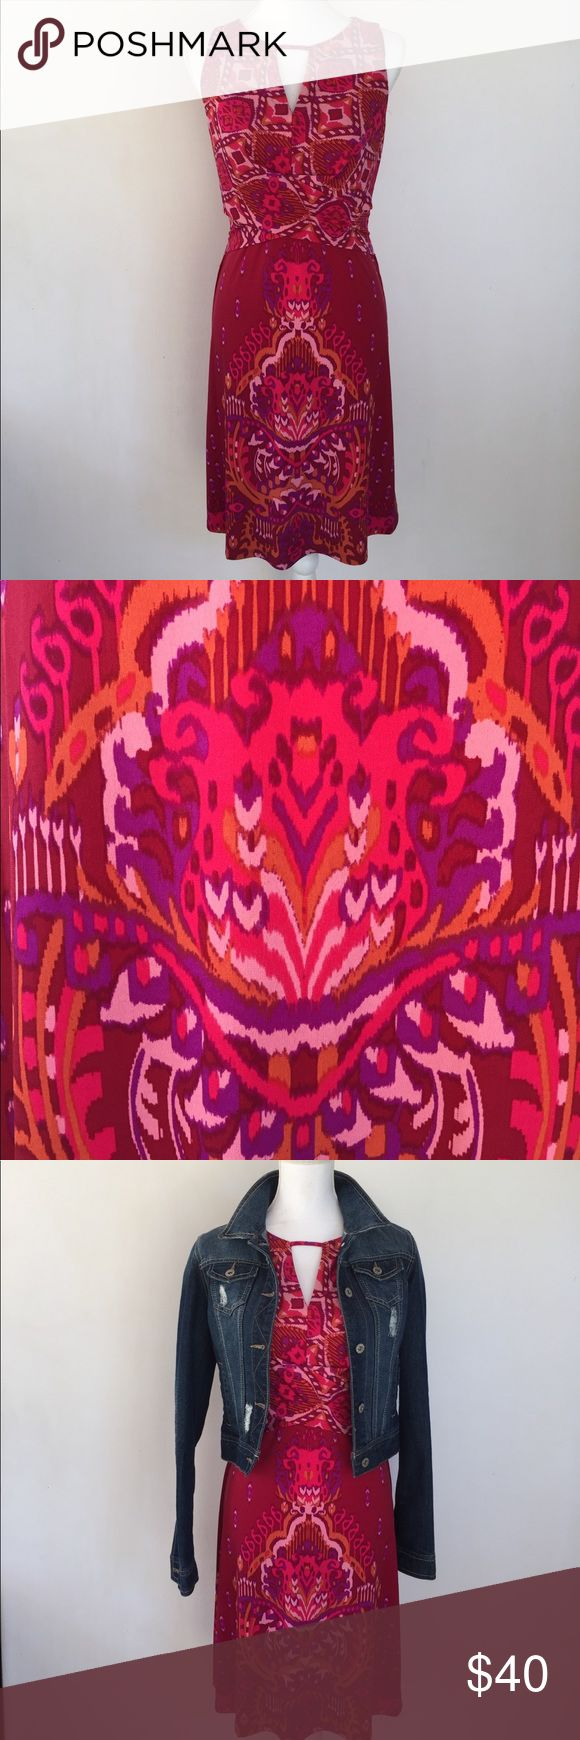 Donna Morgan Pink Patterned Dress, 10 This lovely Donna Morgan Pink Patterned Dress, 10 is great for just about any special occasion or professional setting. EXCELLENT CONDITION NO DEFECTS AND CONES FROM A SMOKE FREE HOME. Donna Morgan Dresses